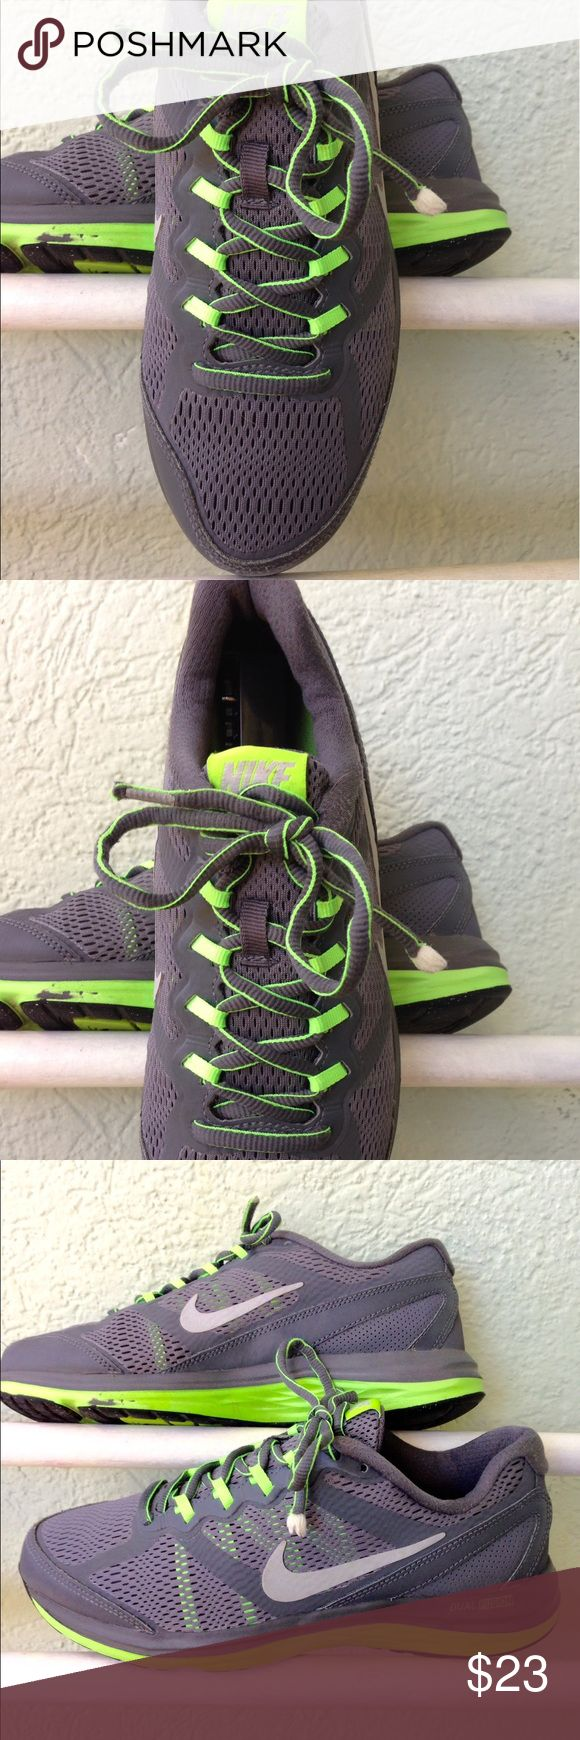 Nike Dual fusion run 3, Size 5 youth sneakers Nike Dual Fusion Run 3, Size 5 youth sneakers in excellent condition. Sneaker colors are gray with neon green string loops NIKE Shoes Sneakers